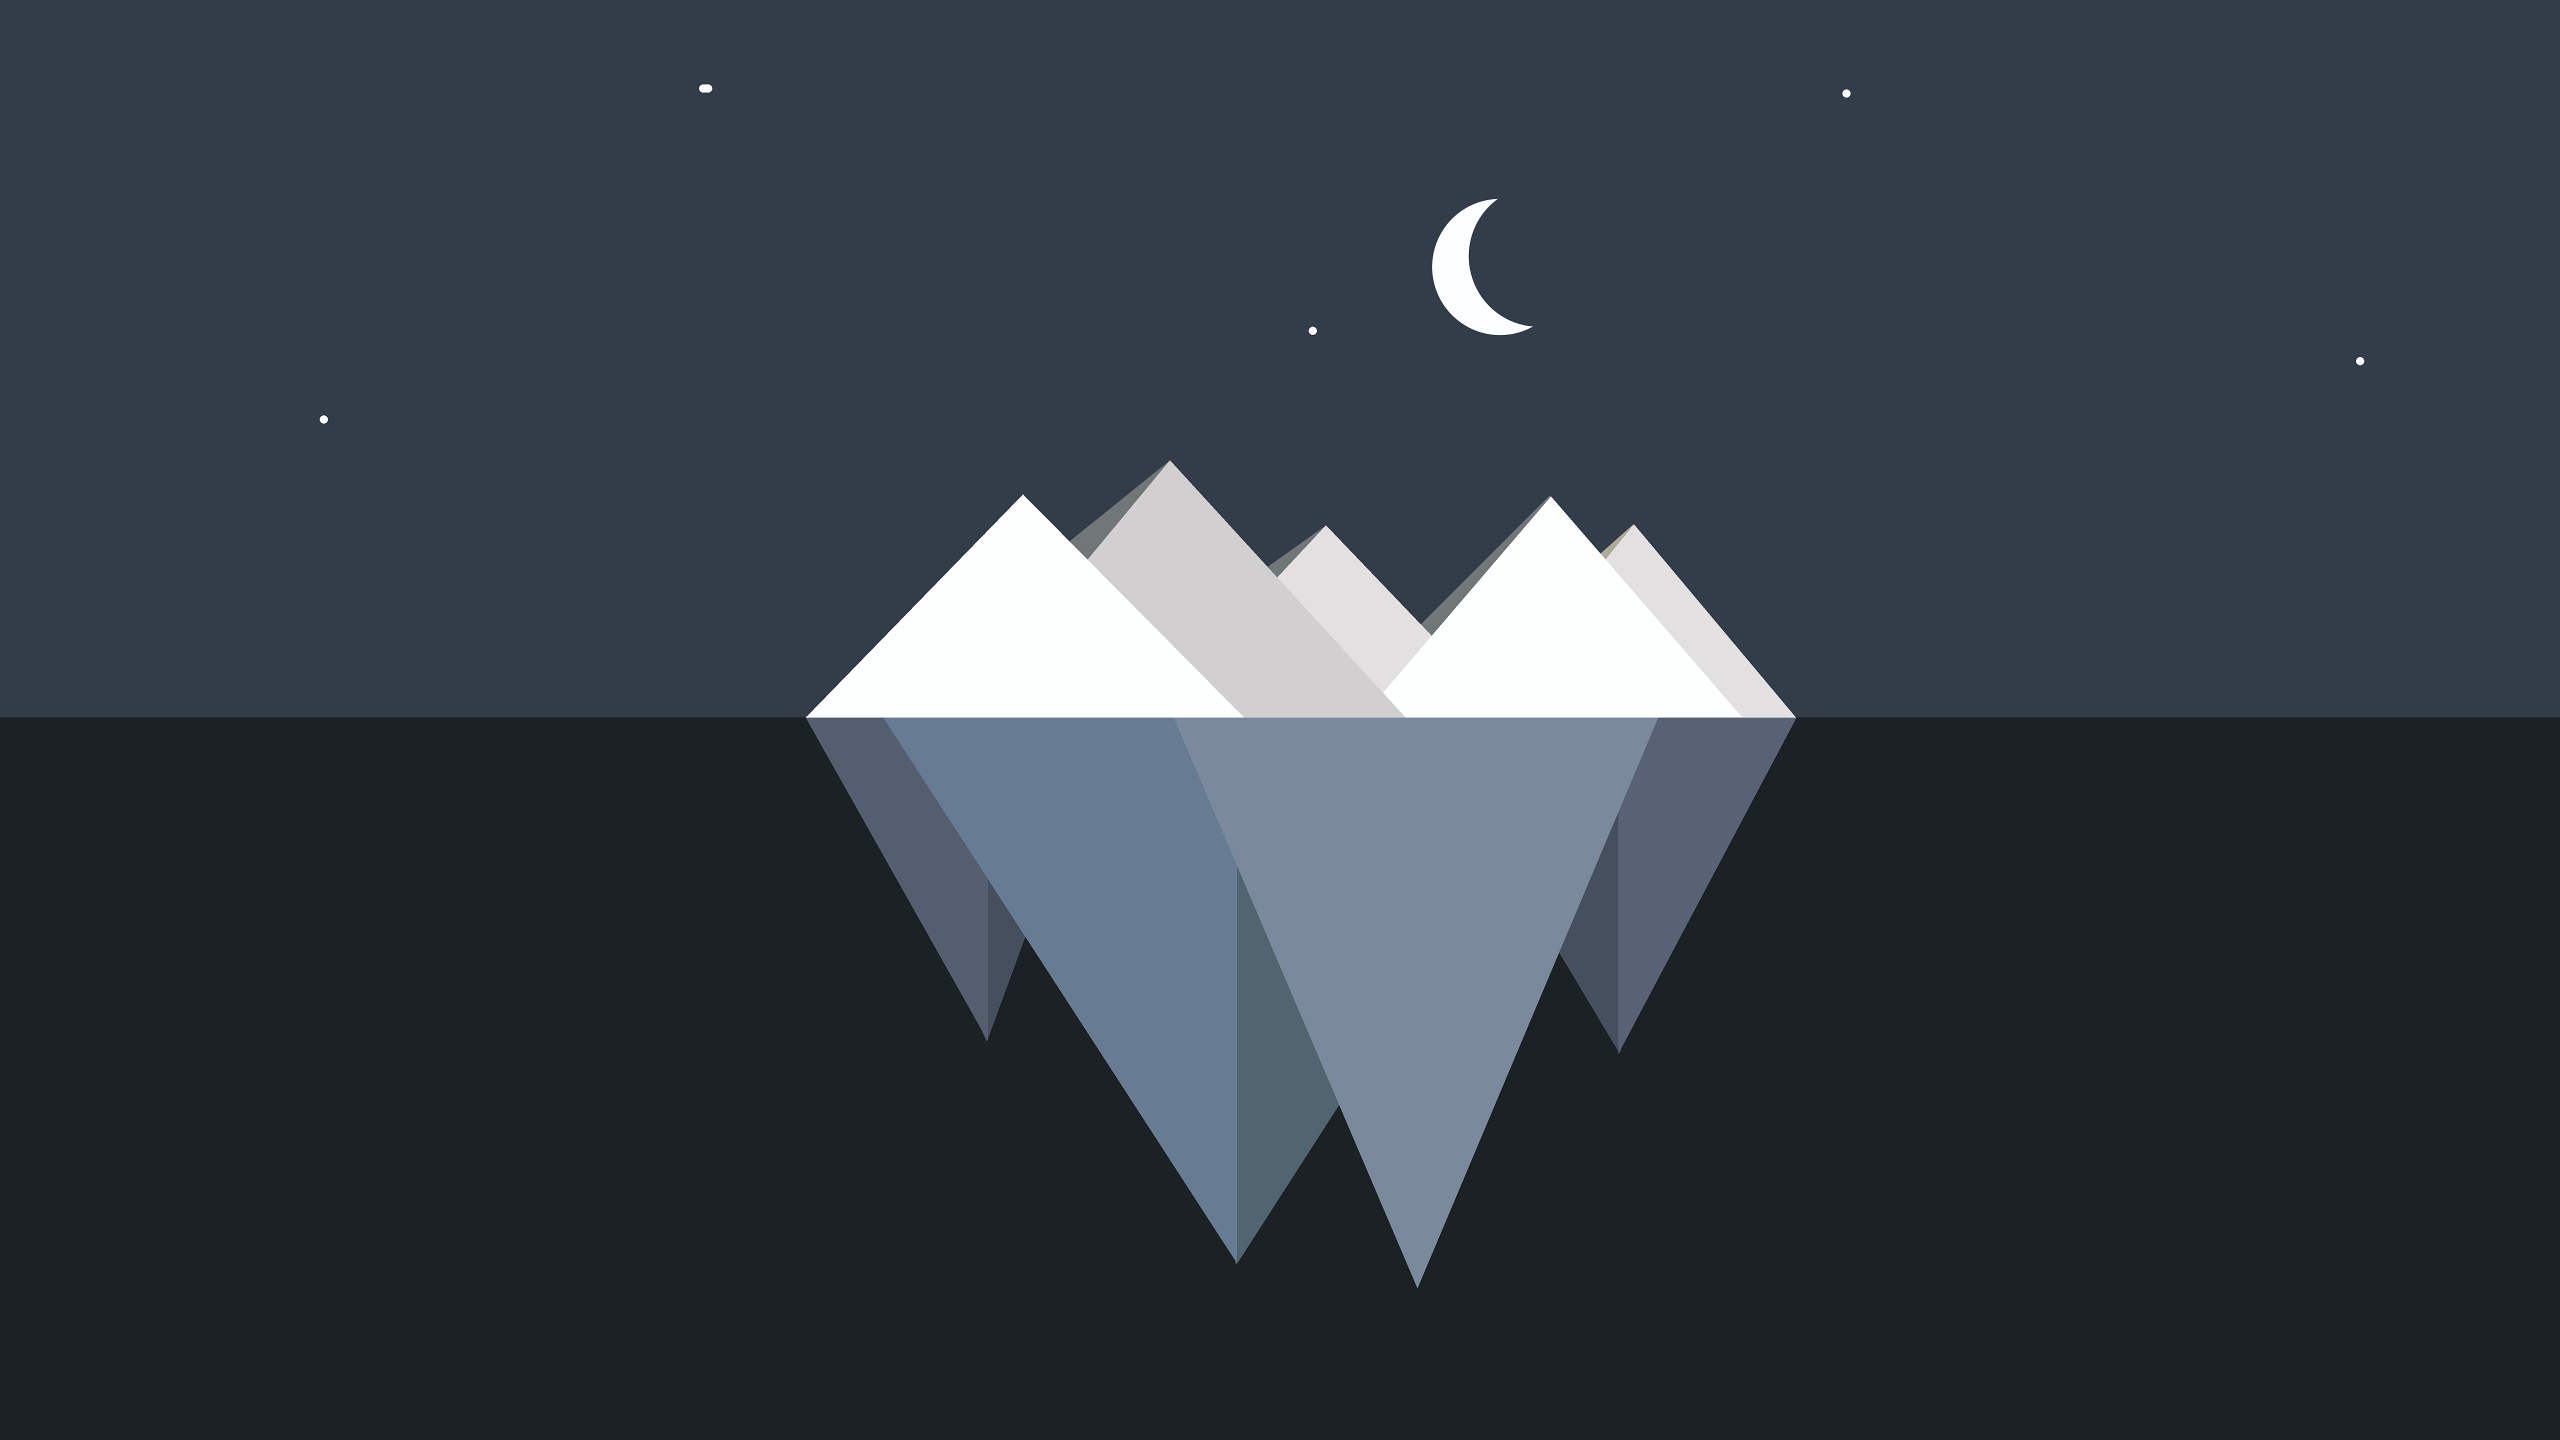 2560x1440 Iceberg Minimalist 1440P Resolution Wallpaper ...